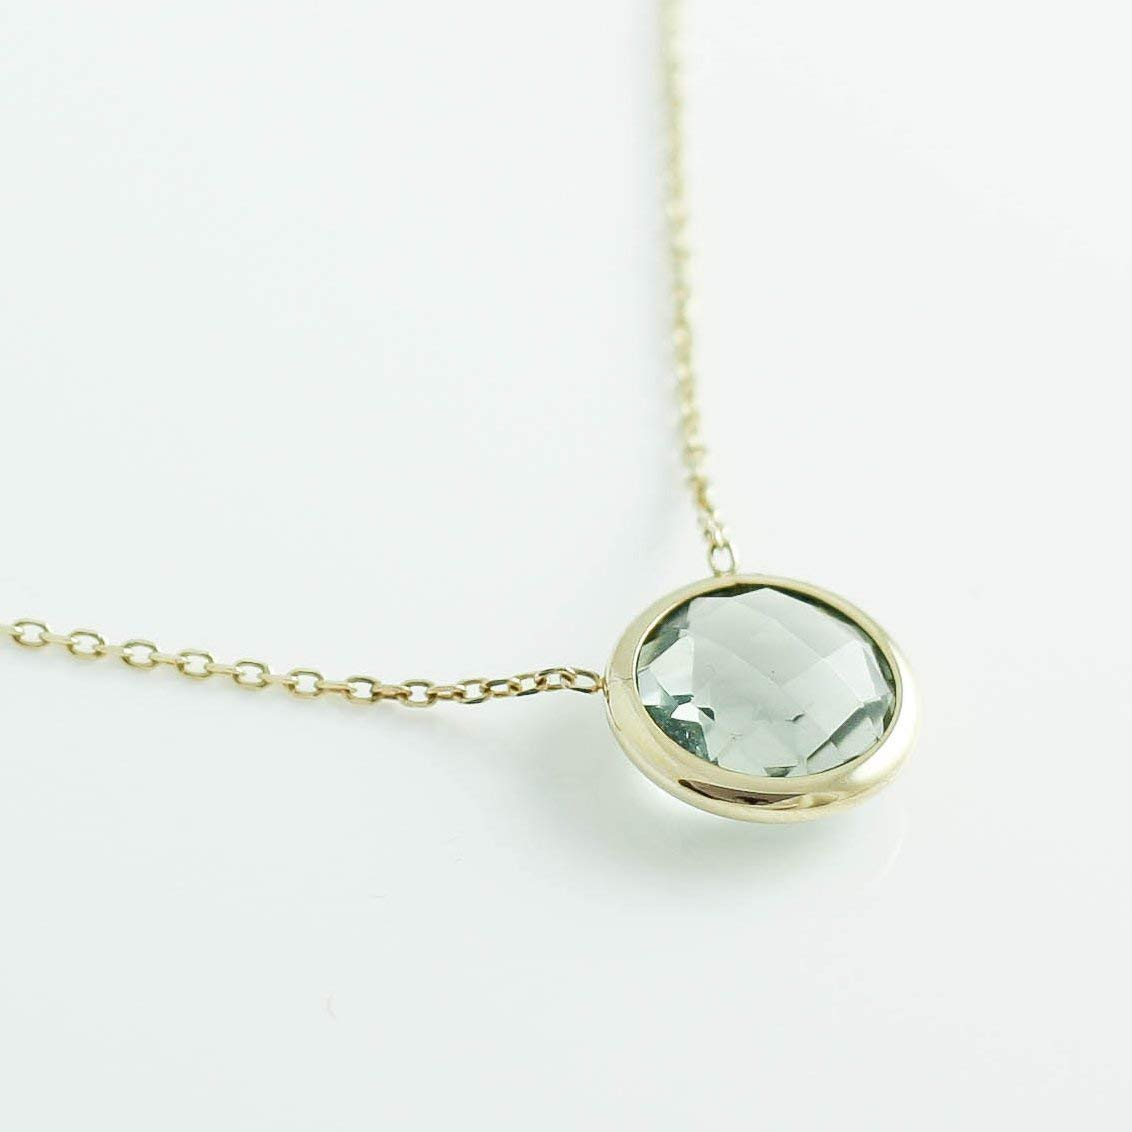 Green Amethyst Necklace Natural Gemstone Simple Layered Gem Pendant 14K Solid Gold Chain Anniversary Birthday Graduation Gift GR0305